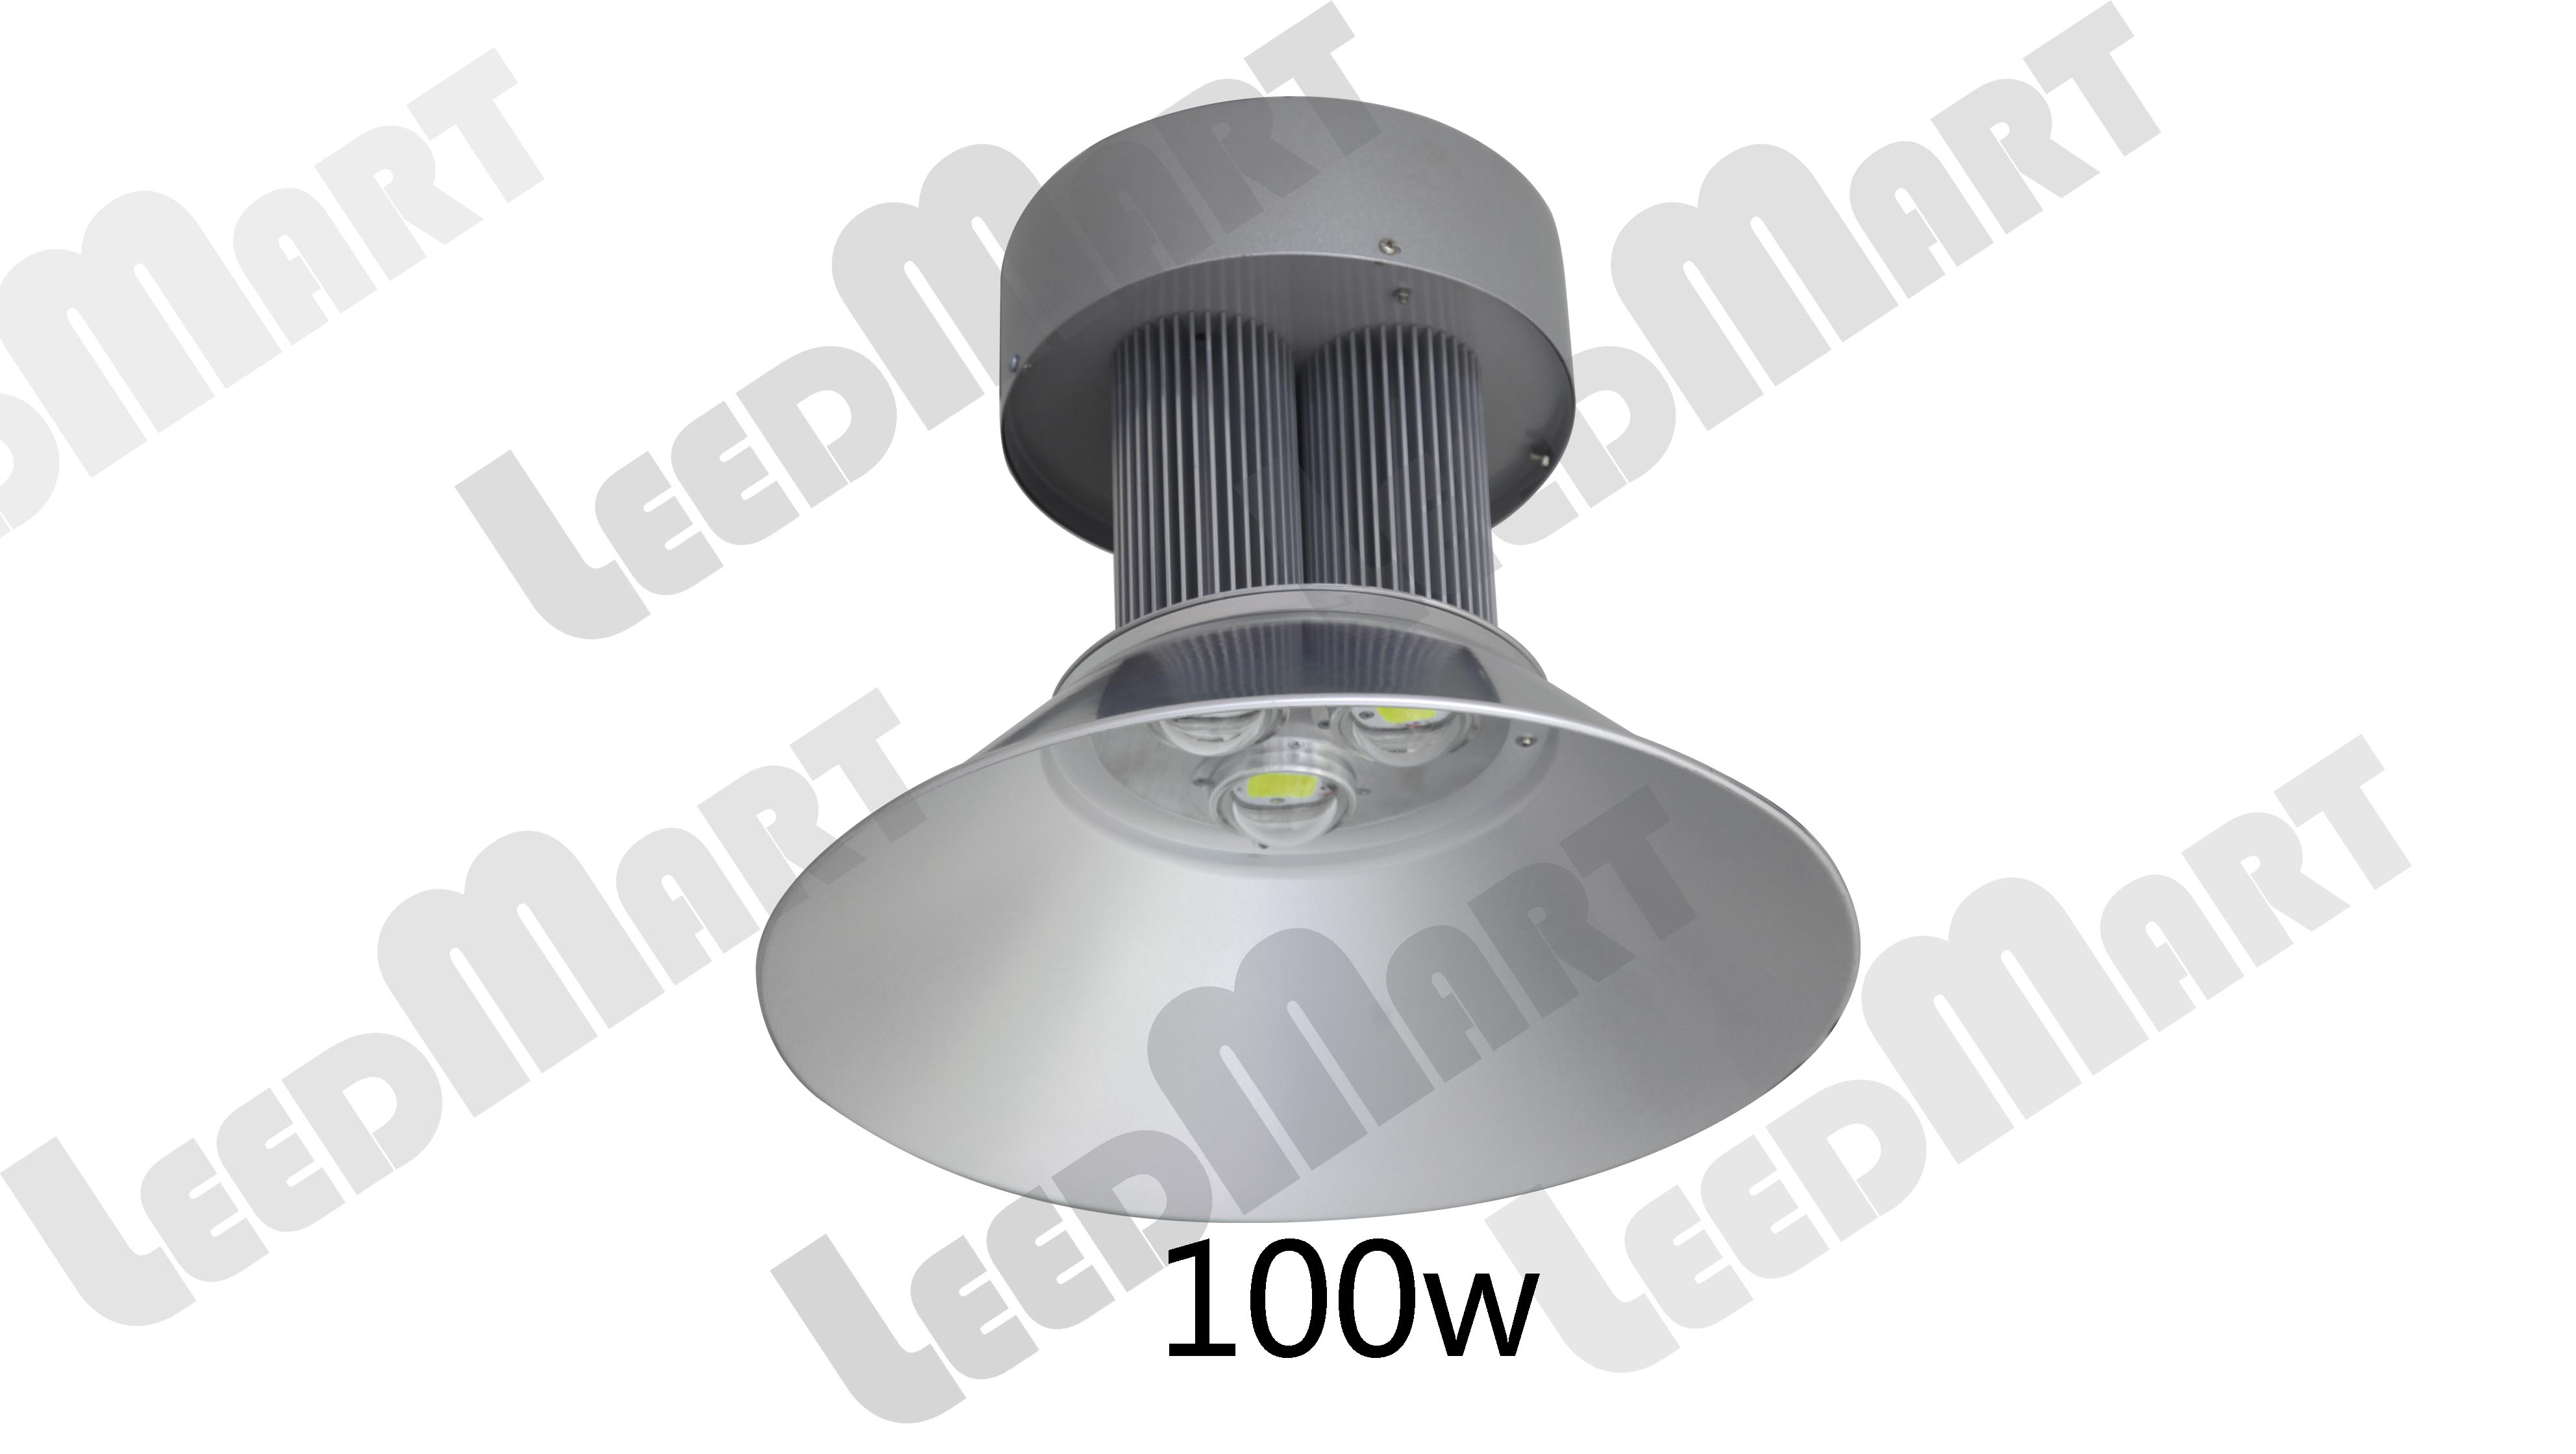 Classic style 100w-200w LED high bay light COB IP65 indoor outdoor commercial industrial warehouse lighting